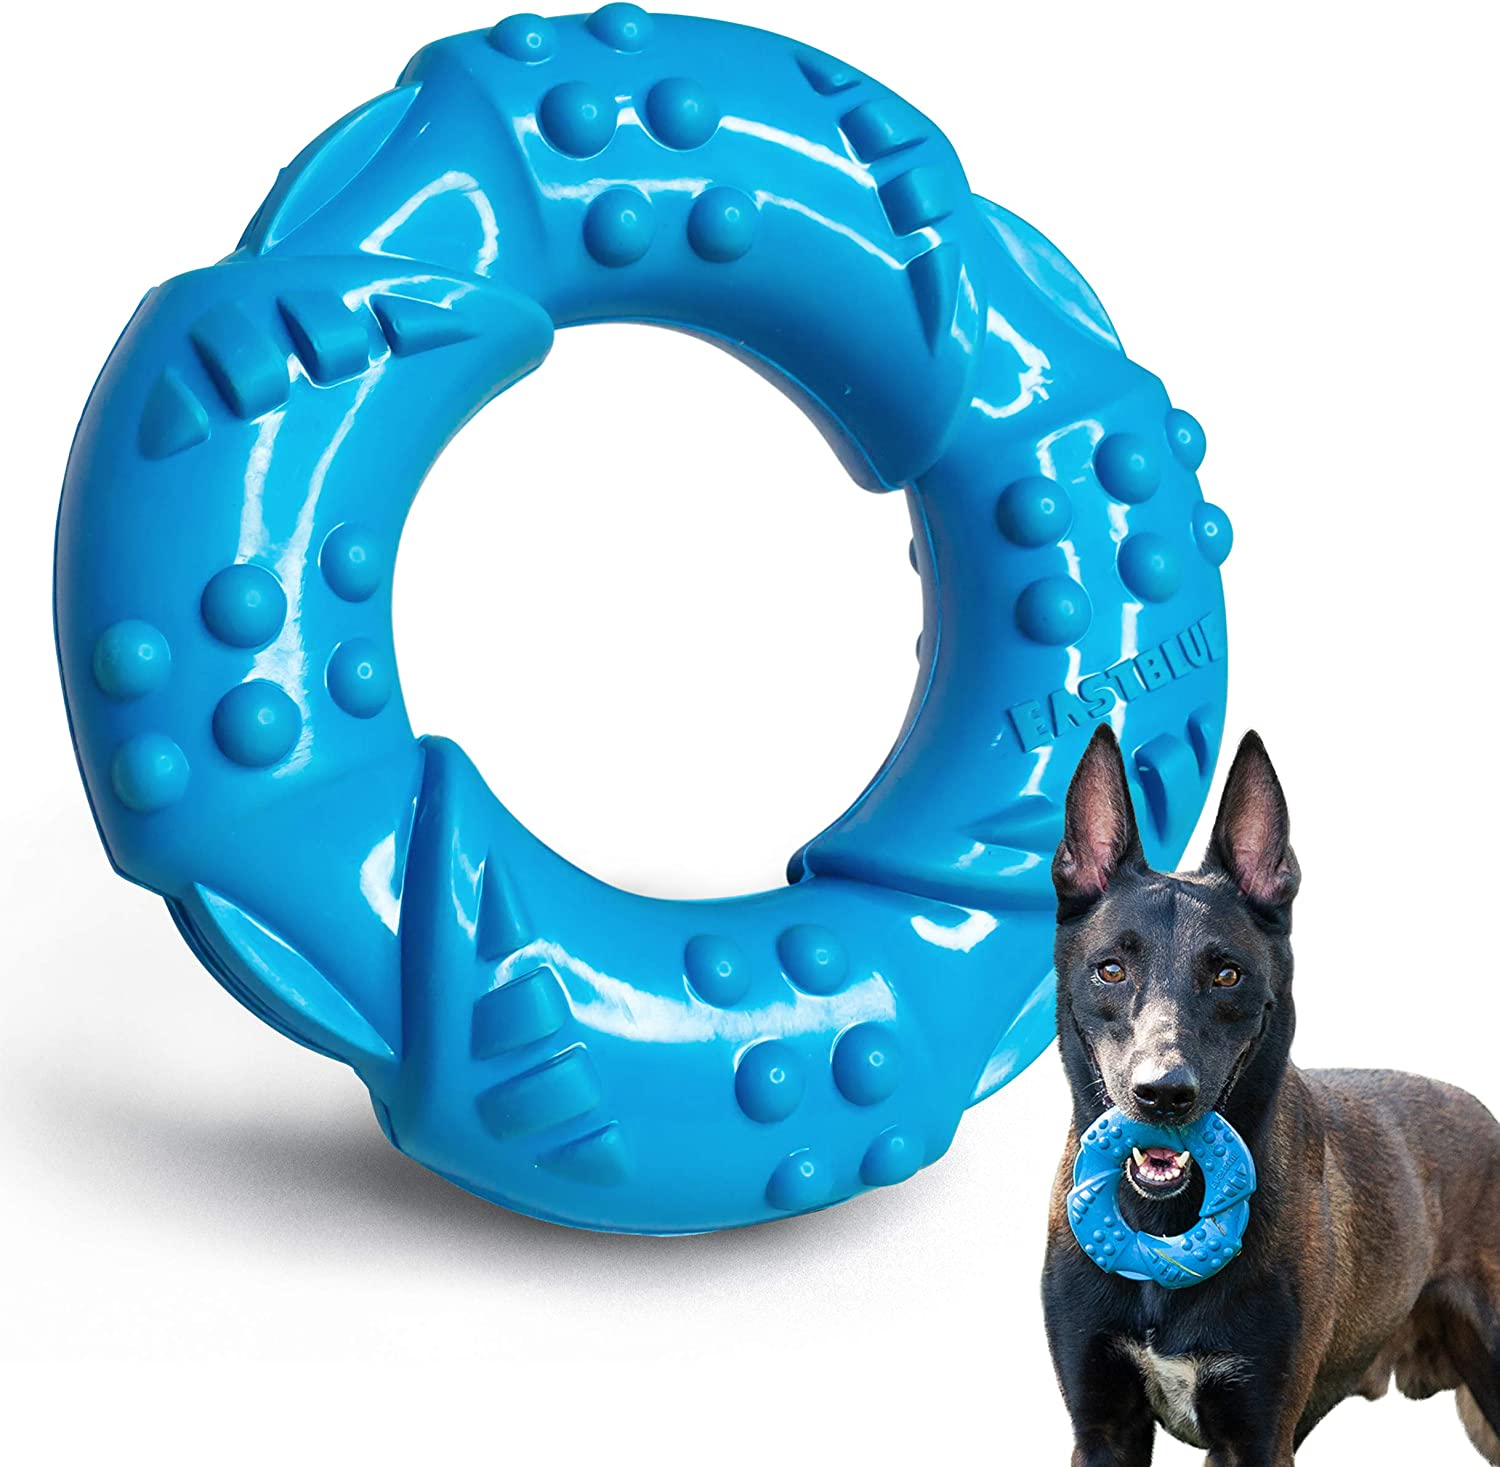 EASTBLUE Indestructible Ultra-Tough Natural Rubber Dog Chew Toys for Large and Medium Breed